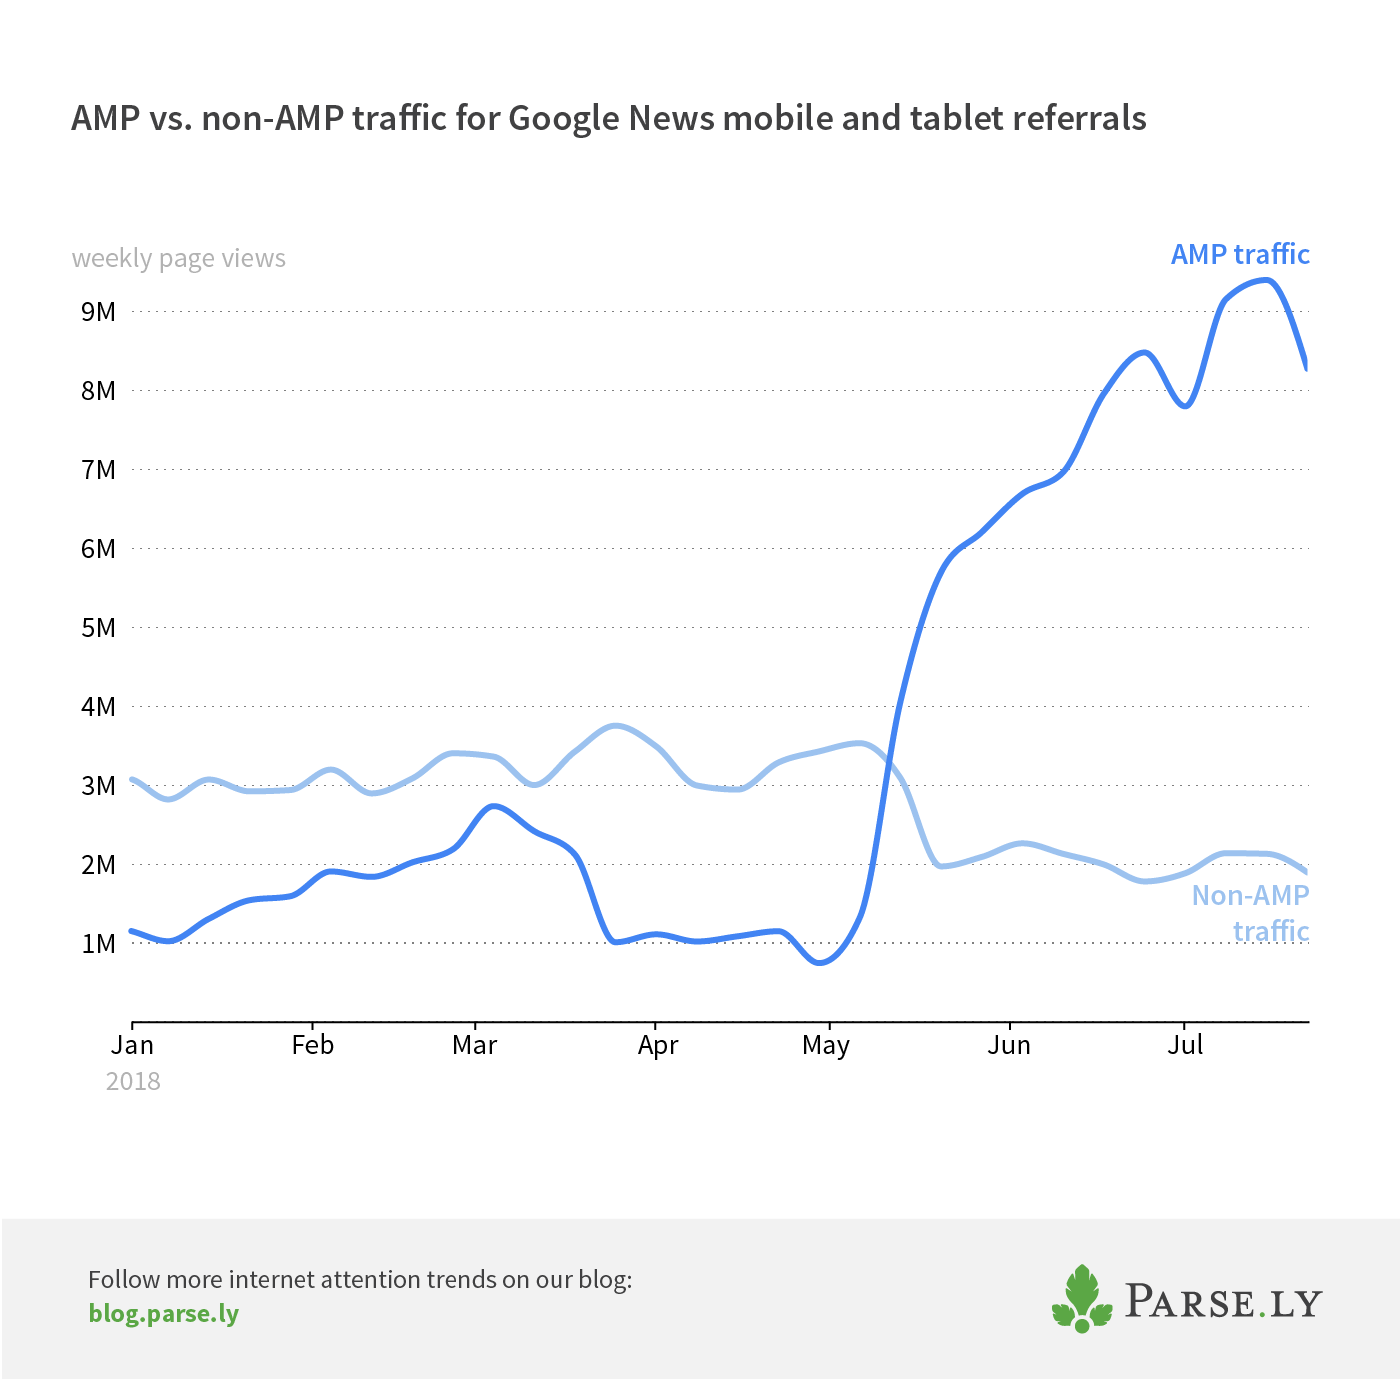 Google News AMP vs. non-AMP traffic